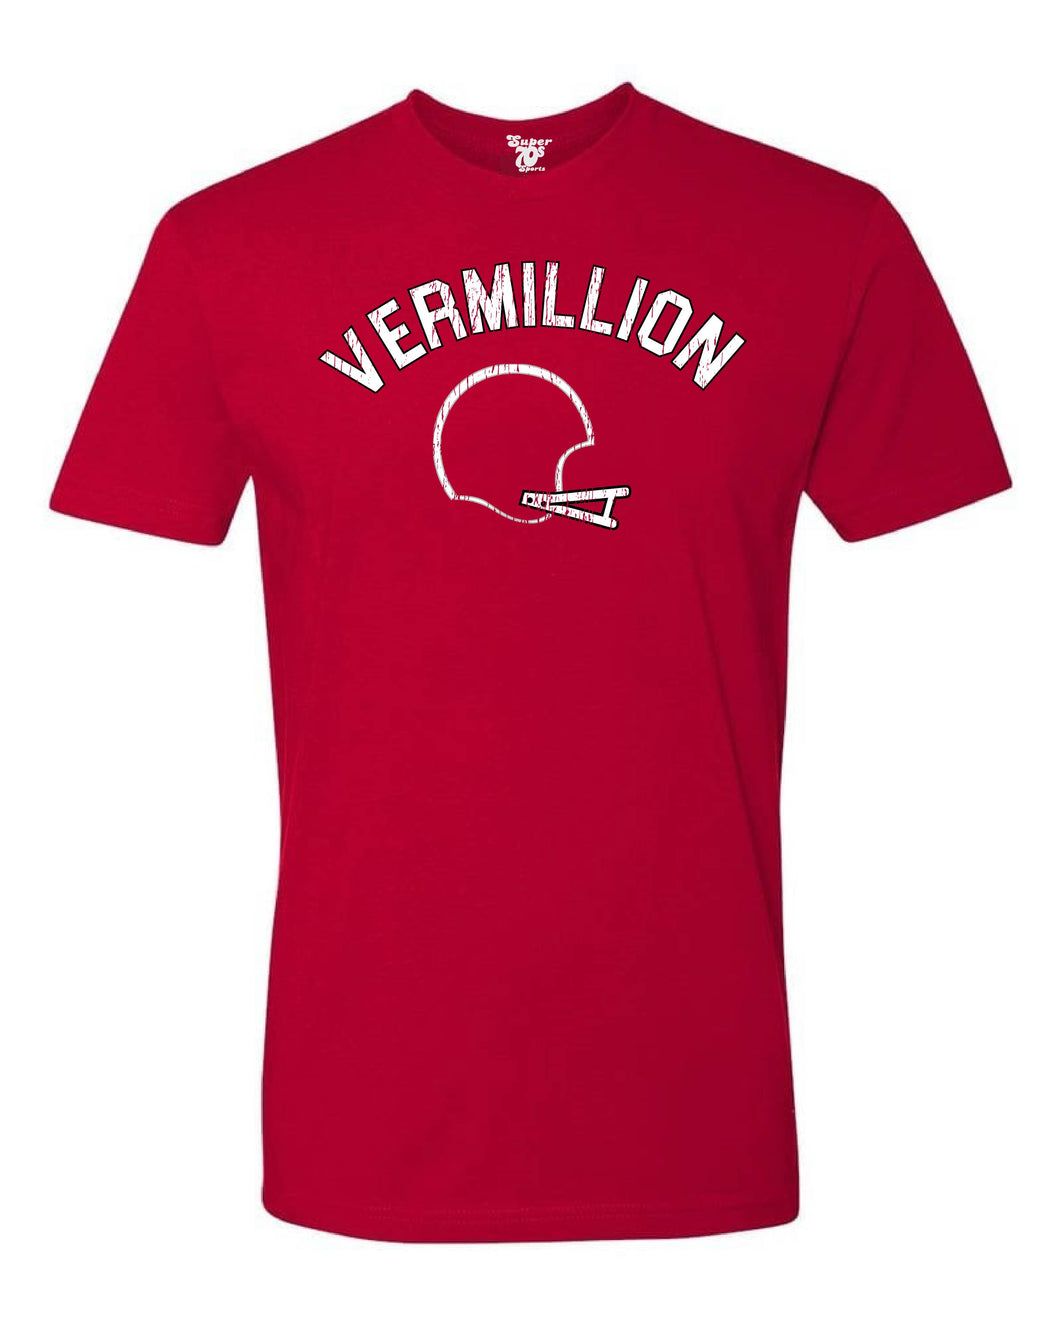 Vermillion Football Tee